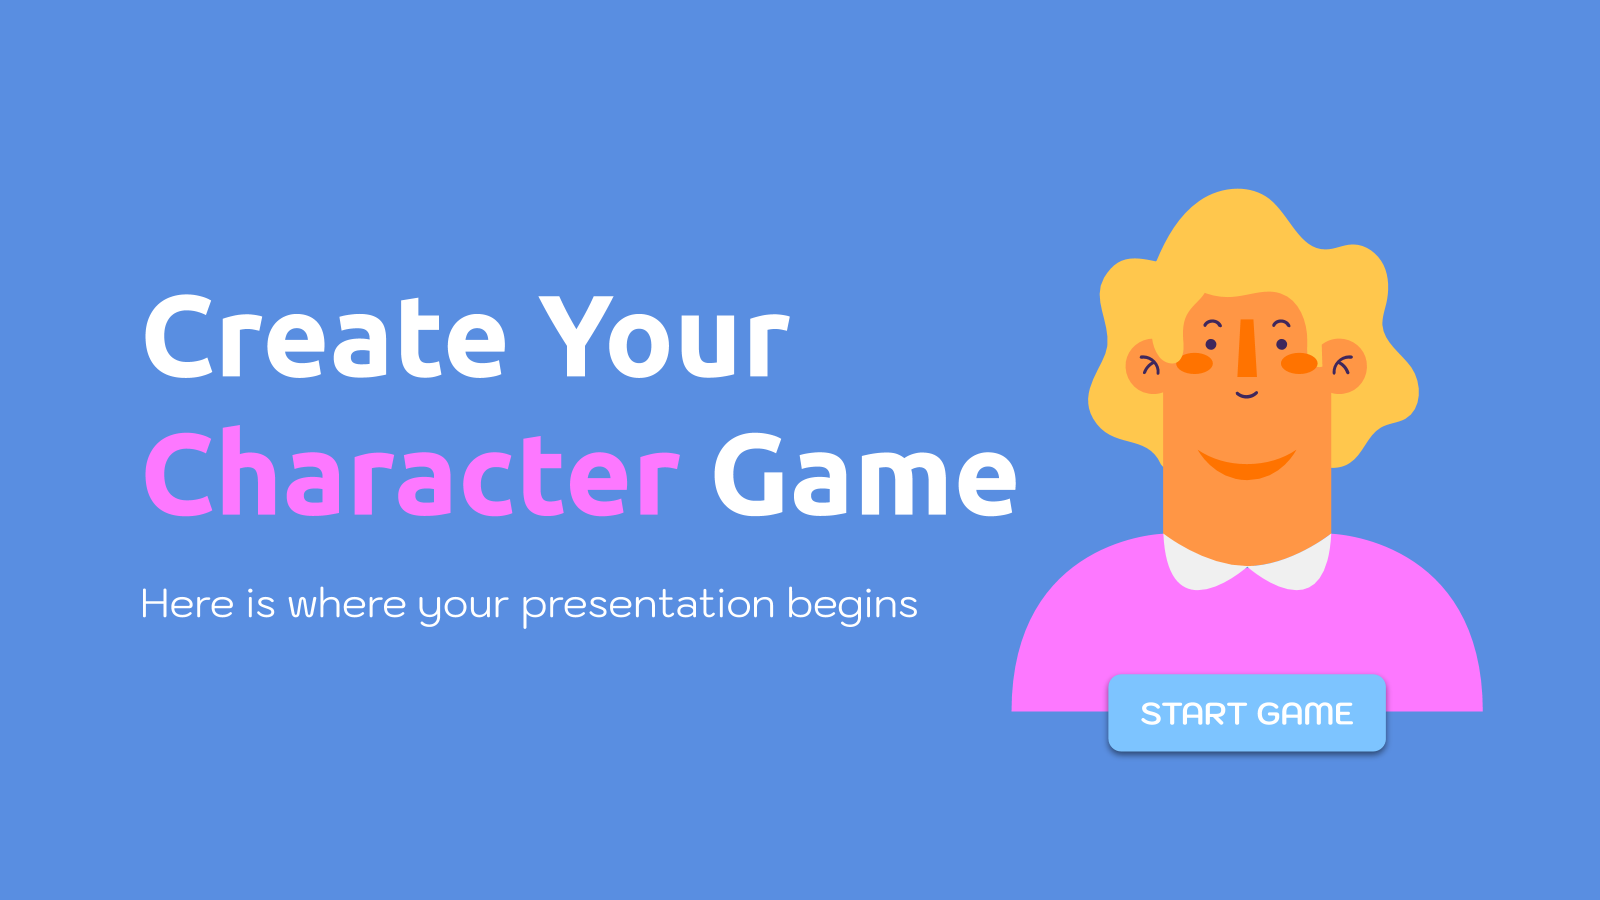 Create Your Character Game presentation template